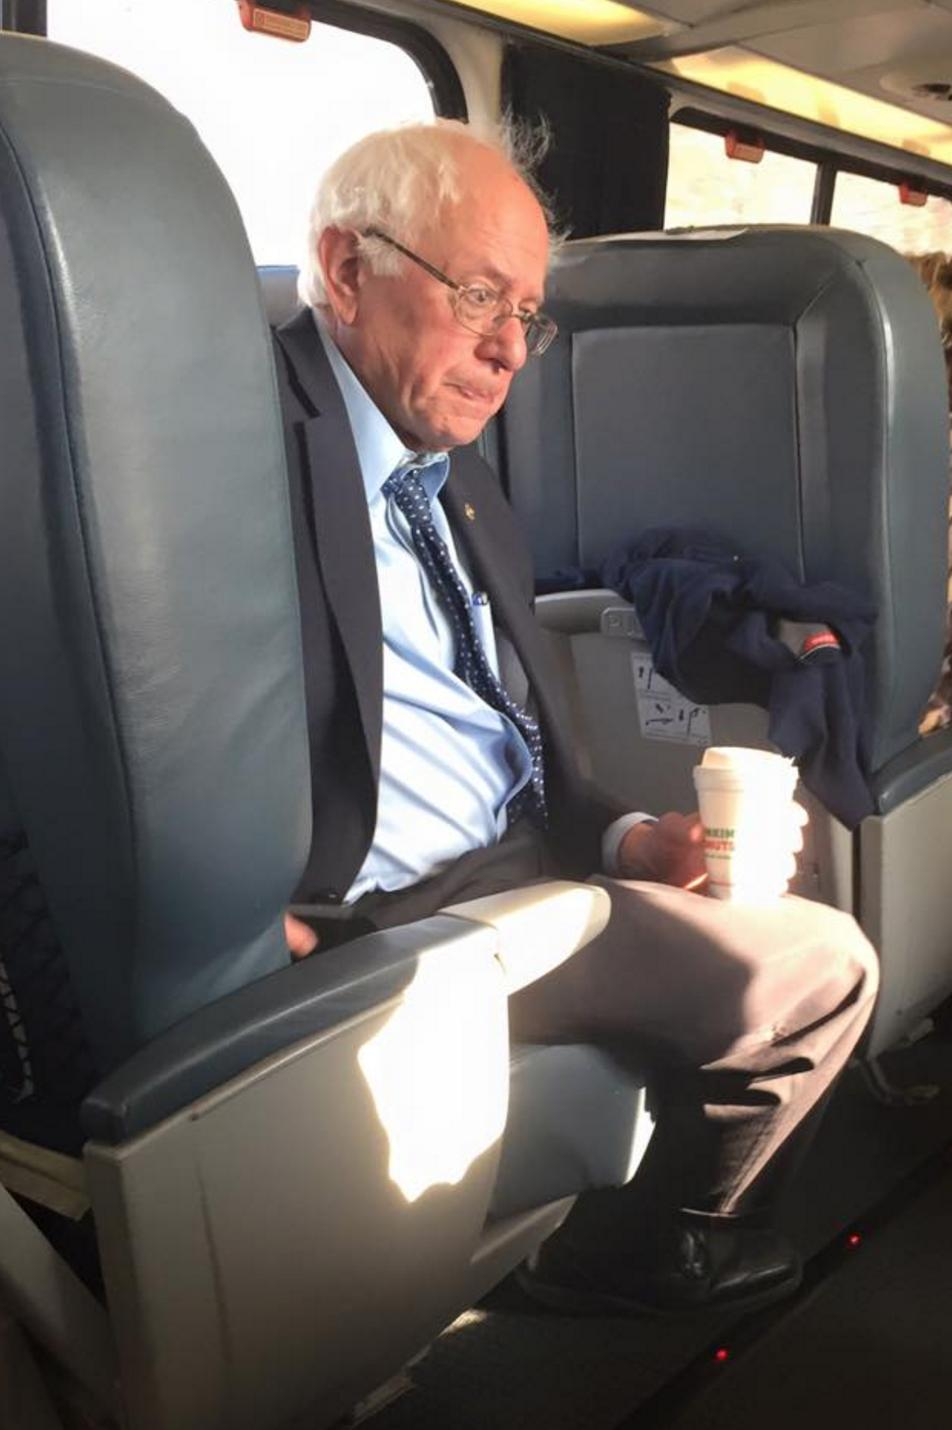 Likewise, it shoulda been hot enough to feel the Bern